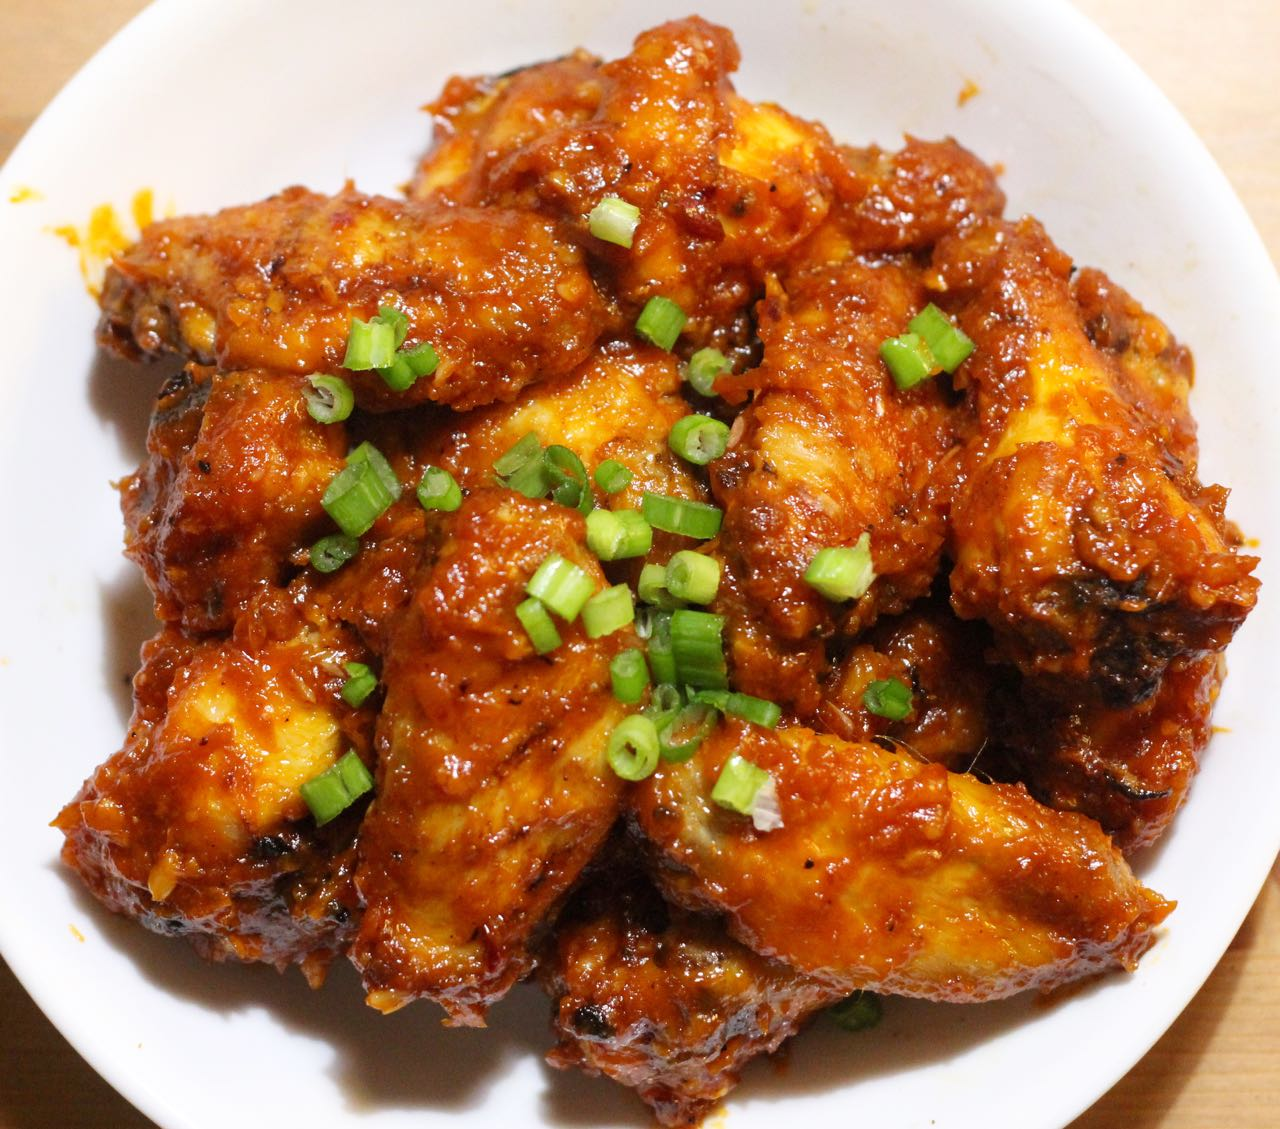 Korean chicken wings recipe - photo#16